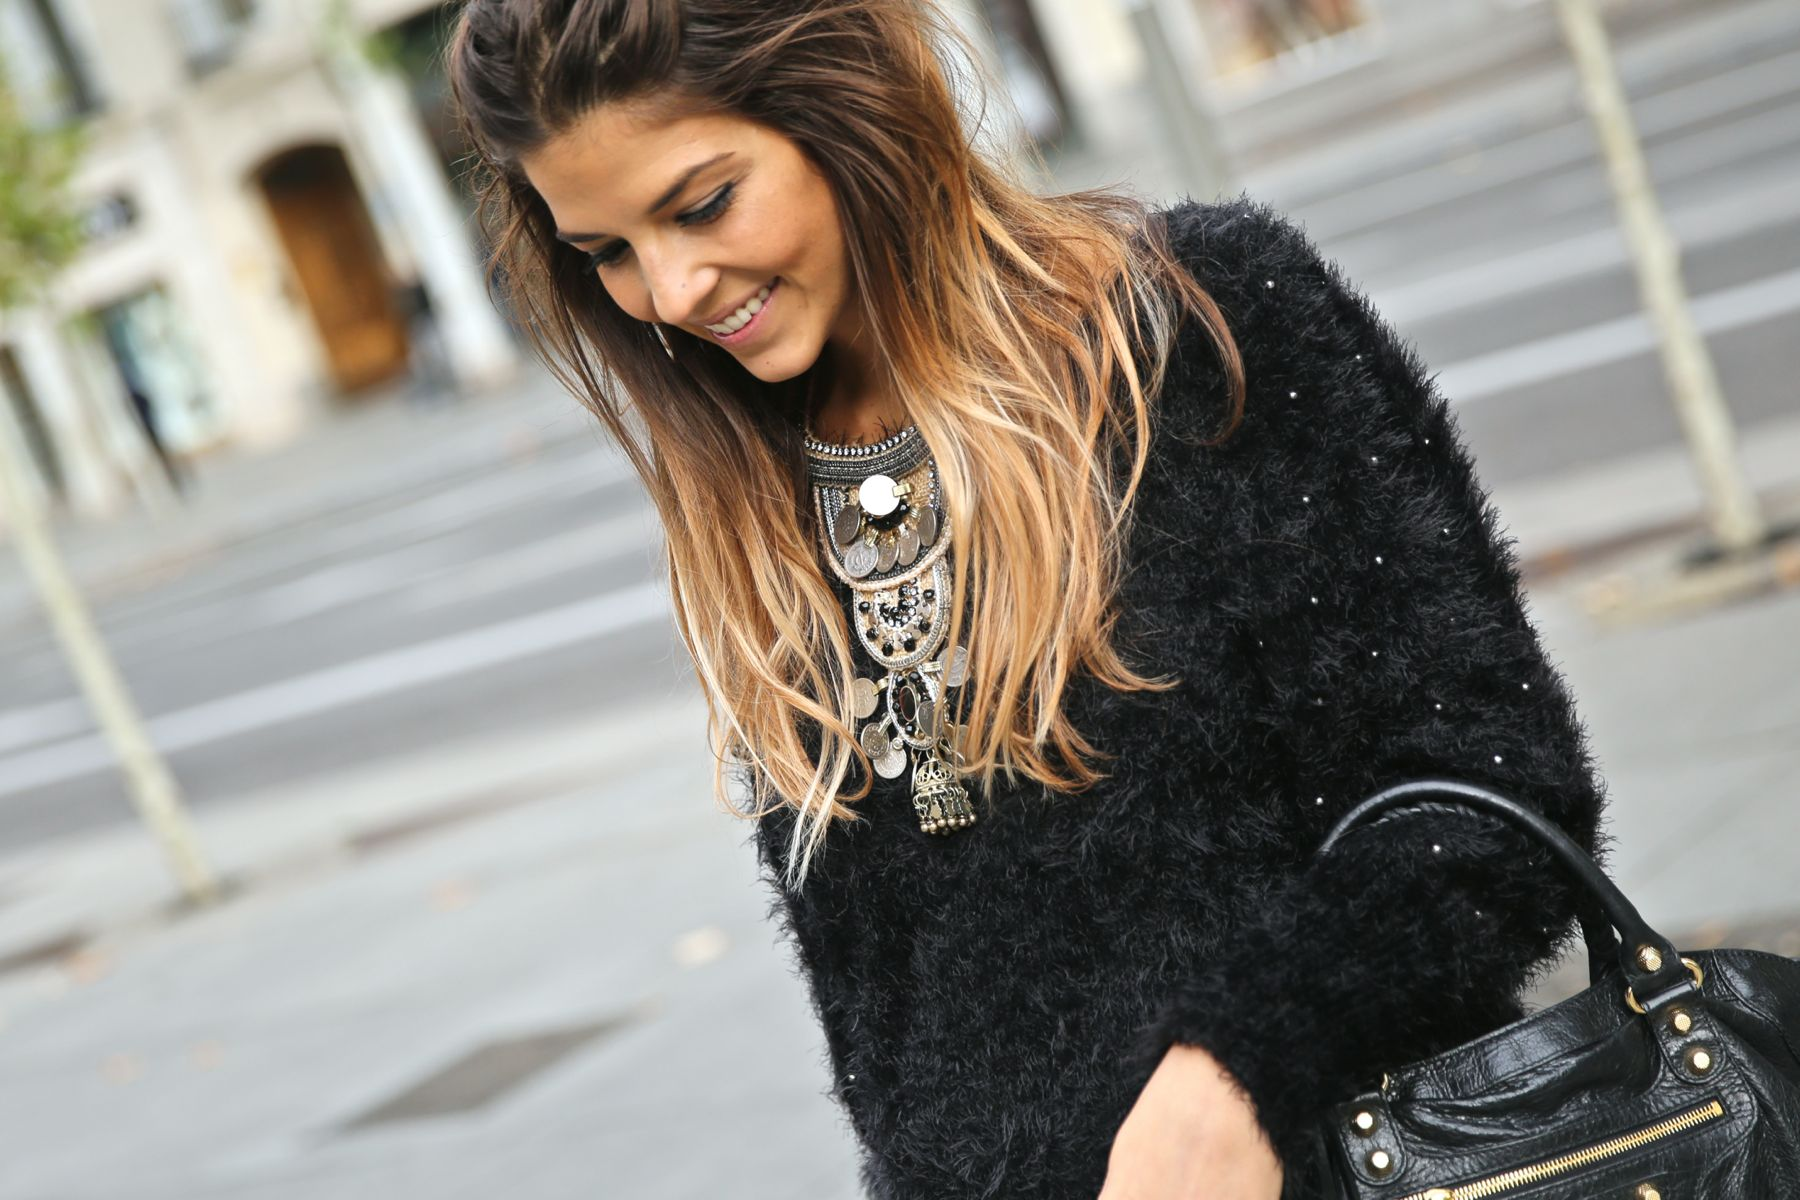 trendy_taste-look-outfit-street_style-ootd-blog-blogger-fashion_spain-moda_españa-balenciaga-city_bag-steve_madden-jersey_pelo-furry_sweater-collar-necklace-skirt-falda_negra-5